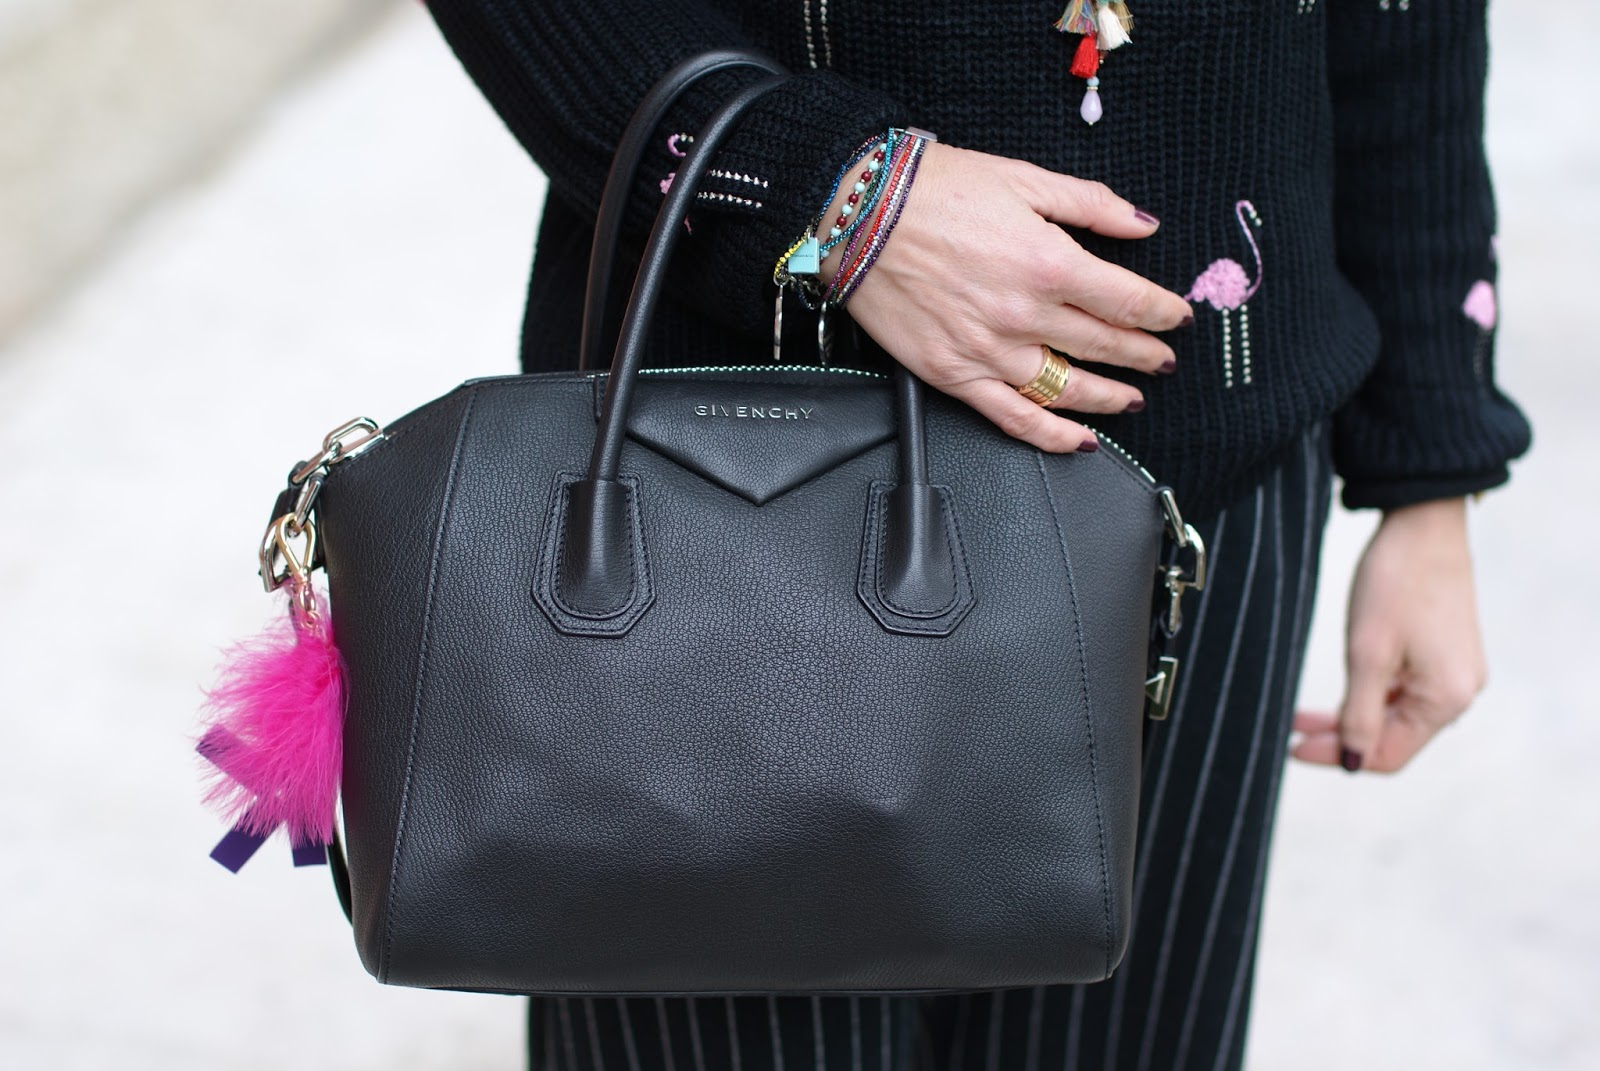 Givenchy Antigona bag on Fashion and Cookies fashion blog, fashion blogger style